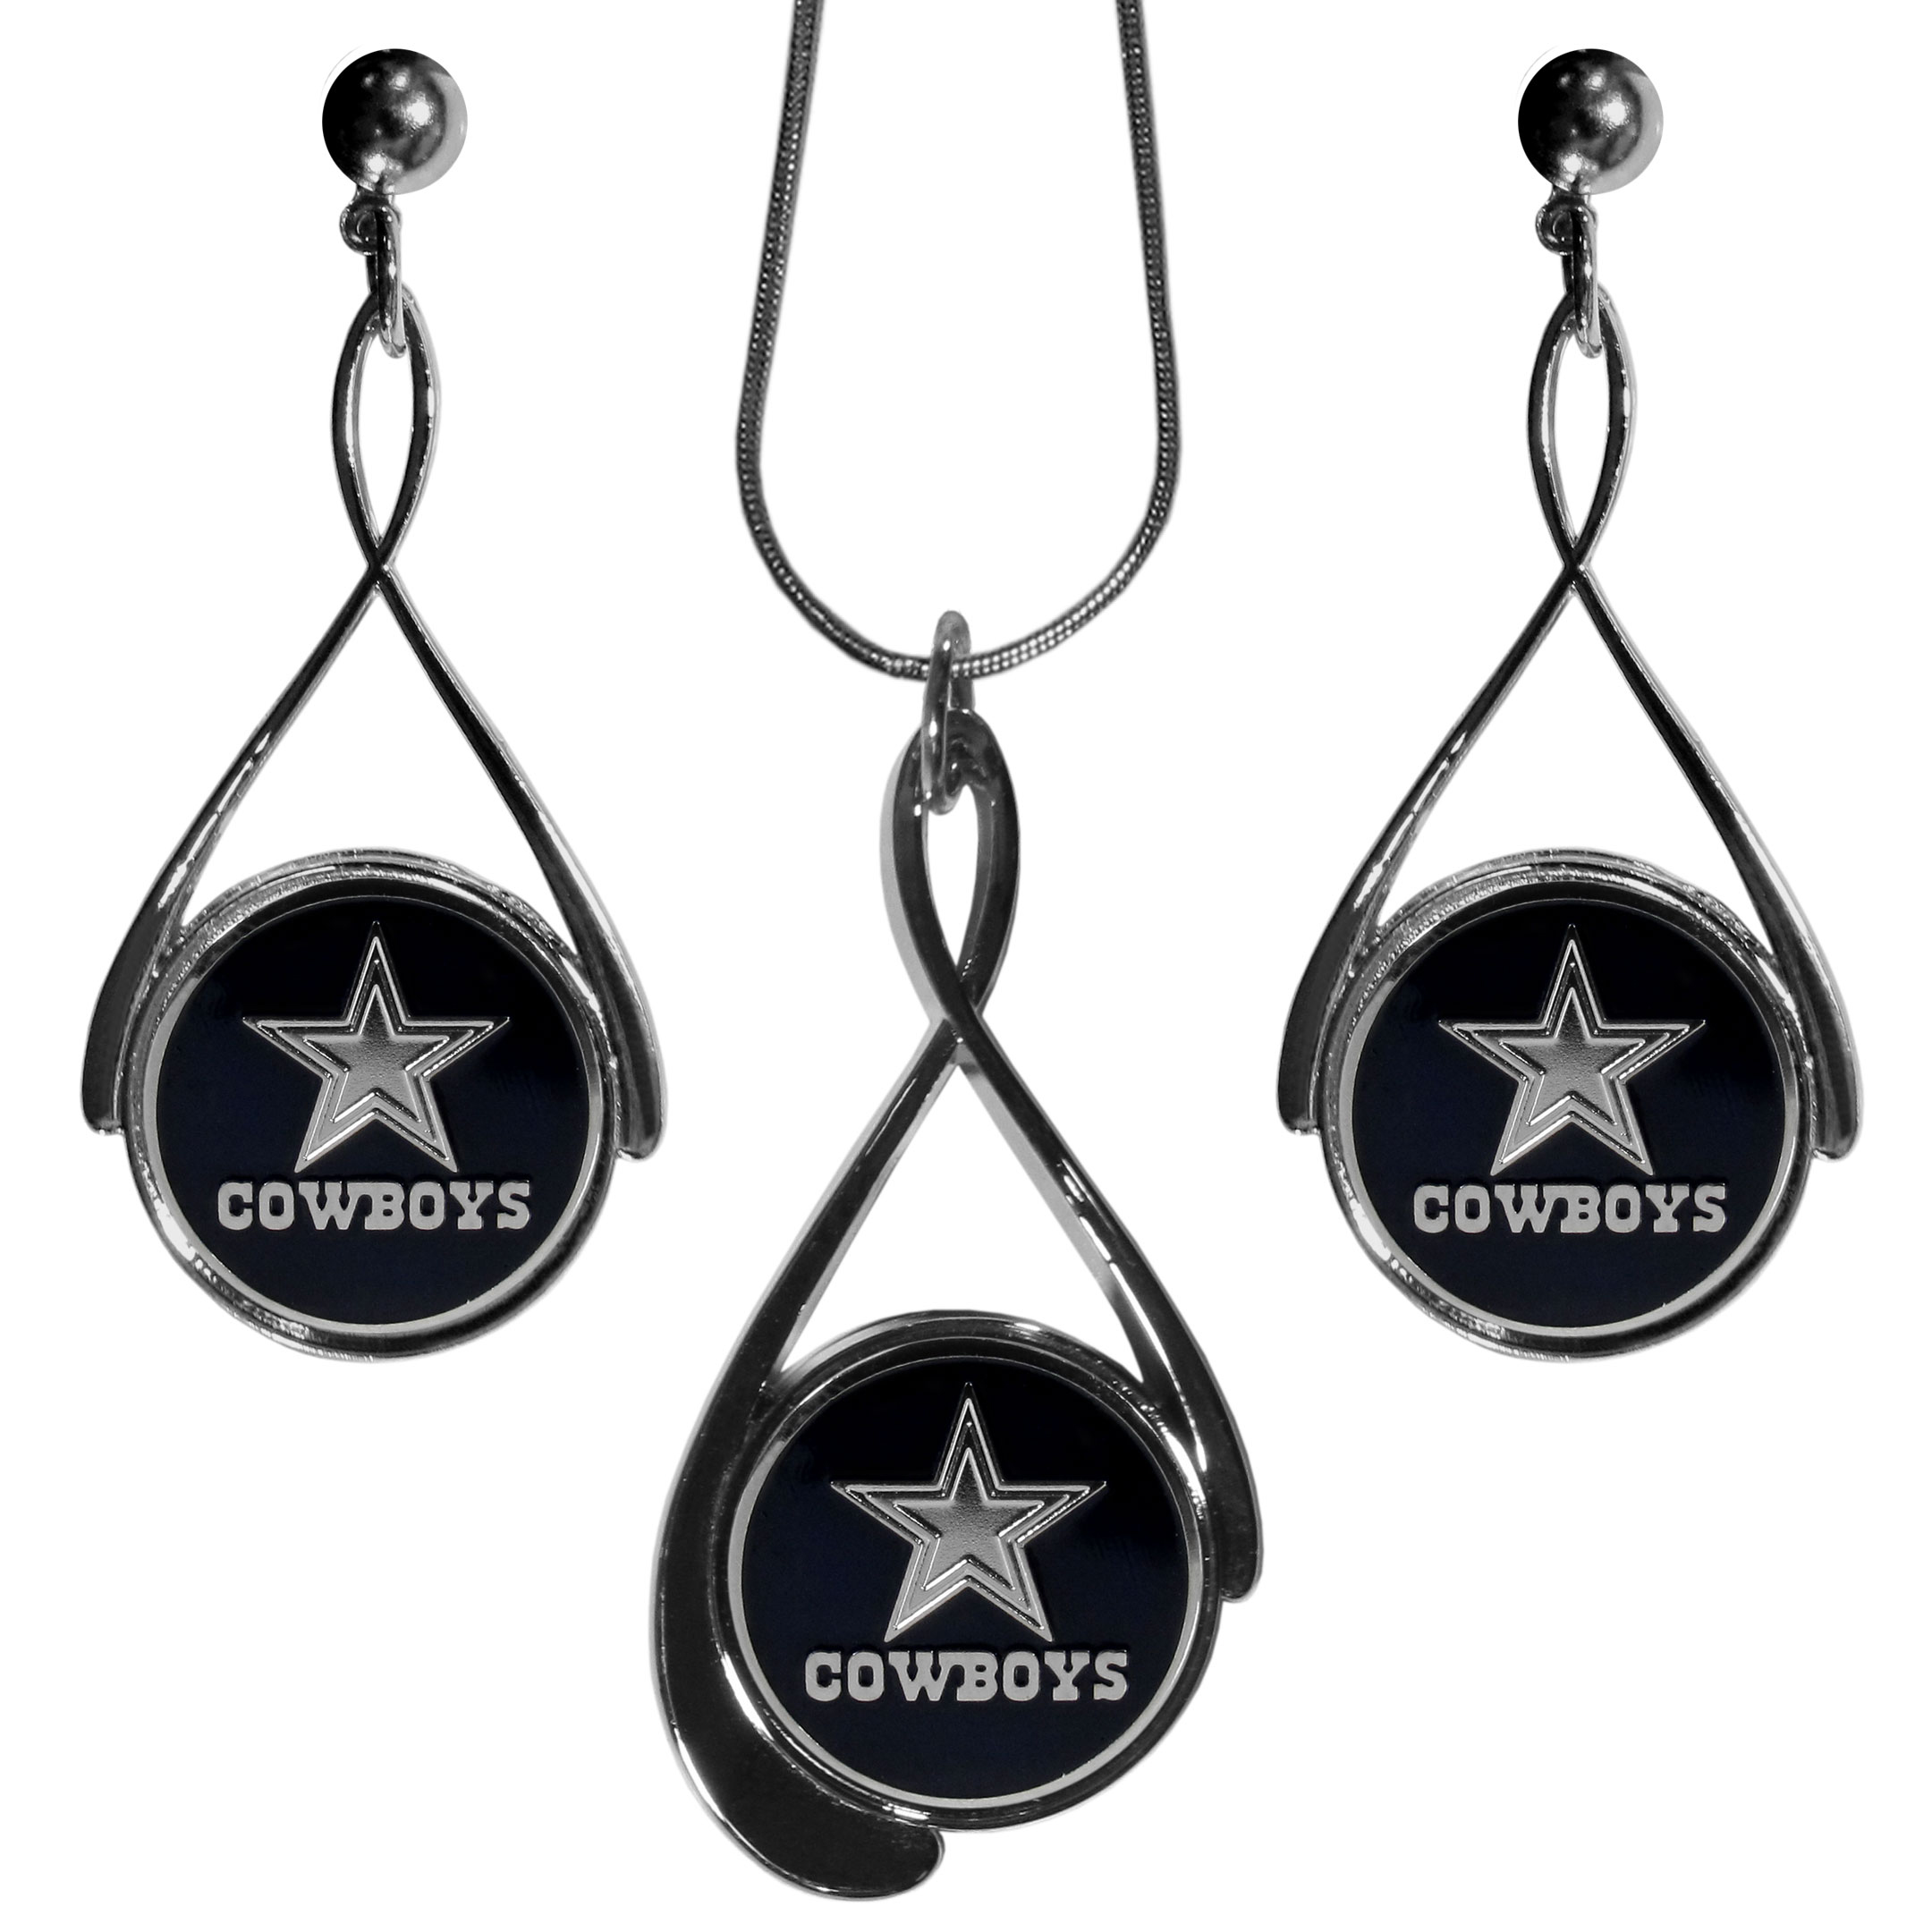 Dallas Cowboys Tear Drop Jewelry Set - Our Dallas Cowboys tear drop earrings and necklace set is a sporty twist on the classic tear drop style. The high polish dangle earrings feature the team logo in raised metal against the primary team color inset into the 2 inch tear drop setting paired with a beautiful matching necklace with a 18 inch snake chain with 2 inch extendor. The earrings have hypoallergenic stud posts.